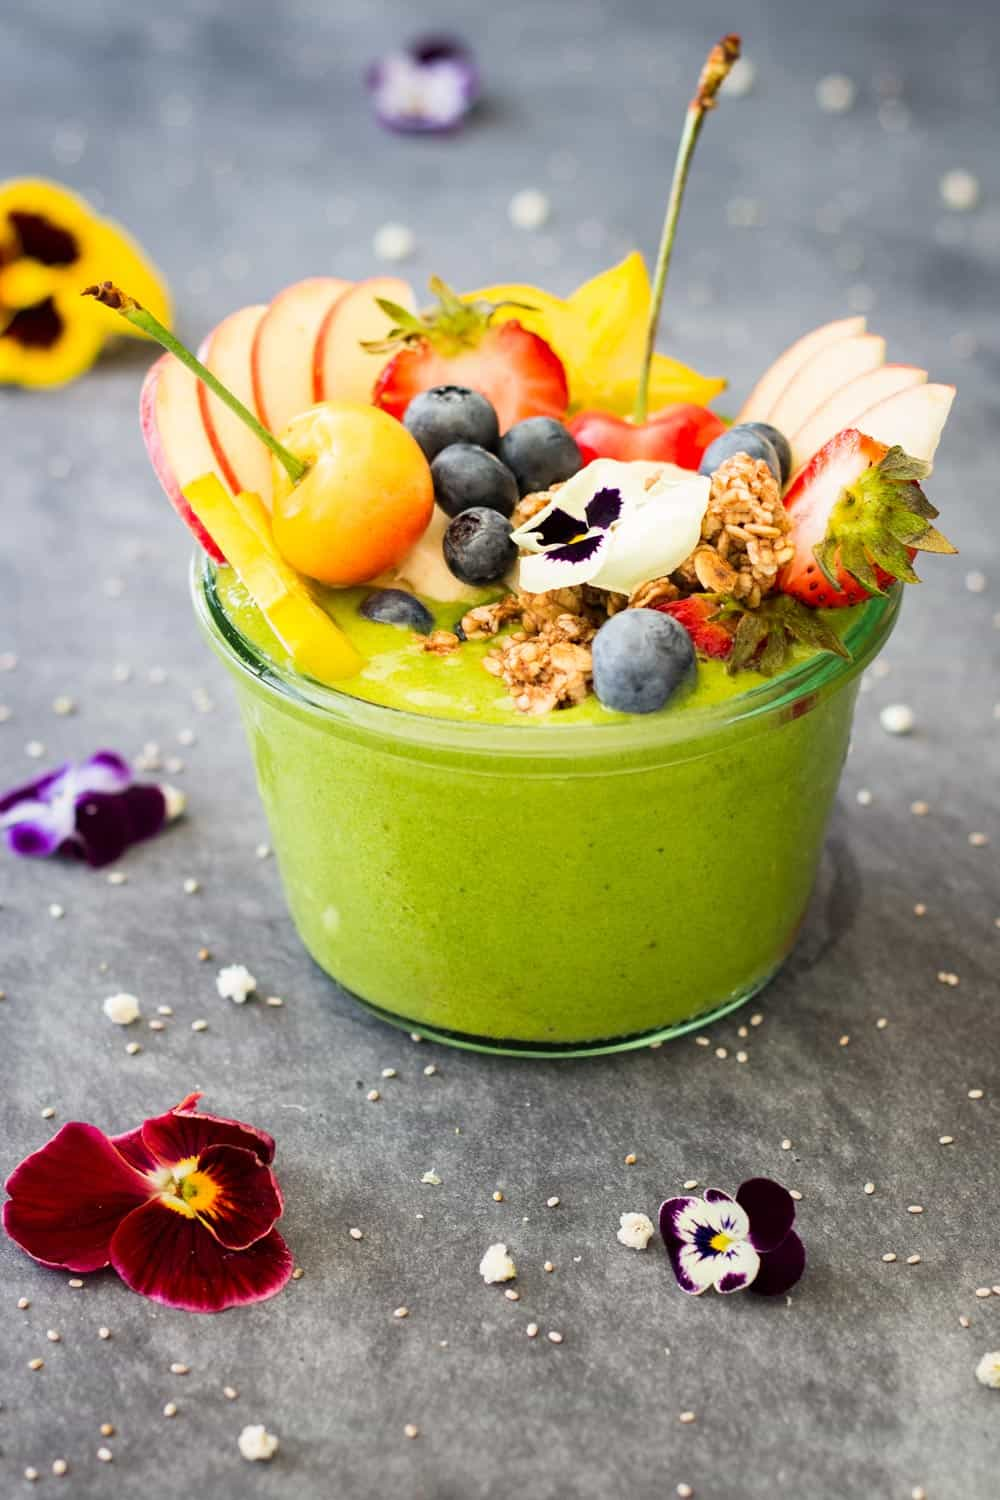 Recipe for a healthy vegan Green Smoothie Bowl full of nutrients that smells like summer. Made with frozen banana, almond milk, and baby spinach!